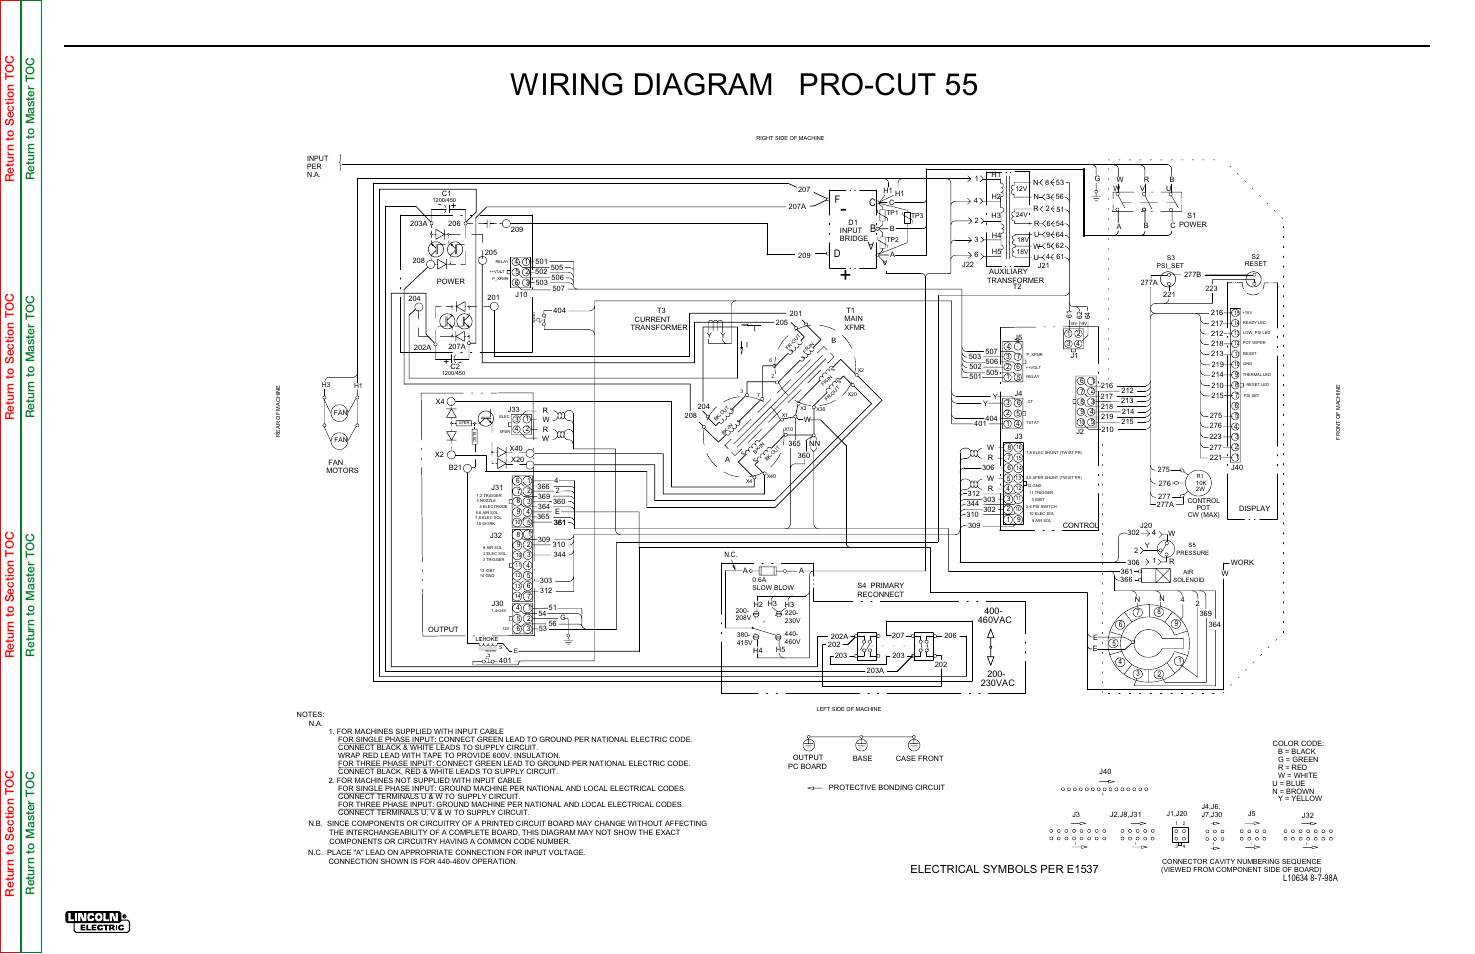 50 amp electrical service diagram residential